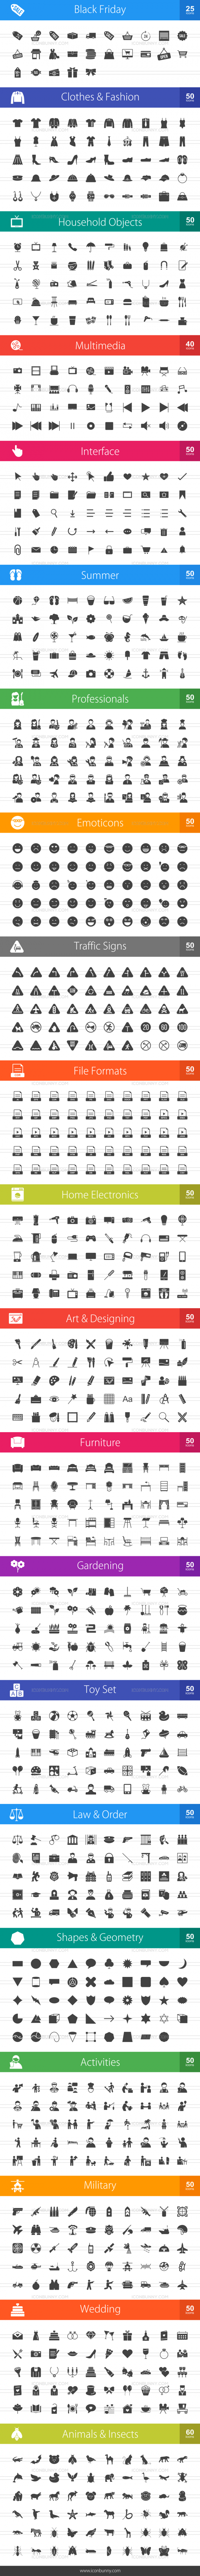 1025 Glyph Icons Bundle - Preview - IconBunny